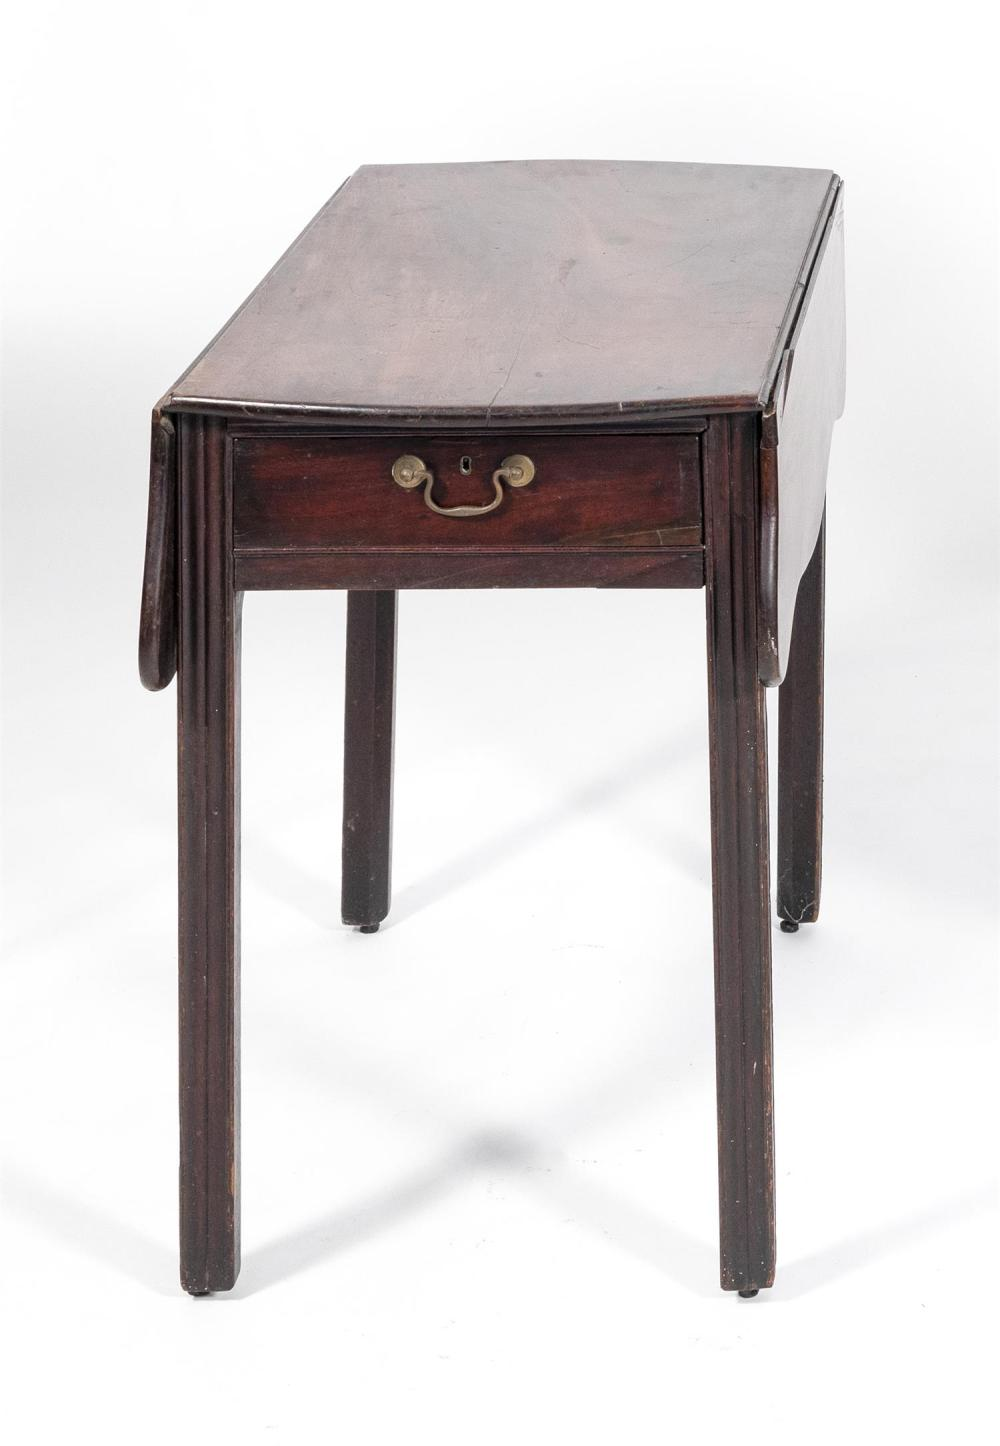 ENGLISH PEMBROKE TABLE Fourth Quarter of the 18th Century Height 29.25